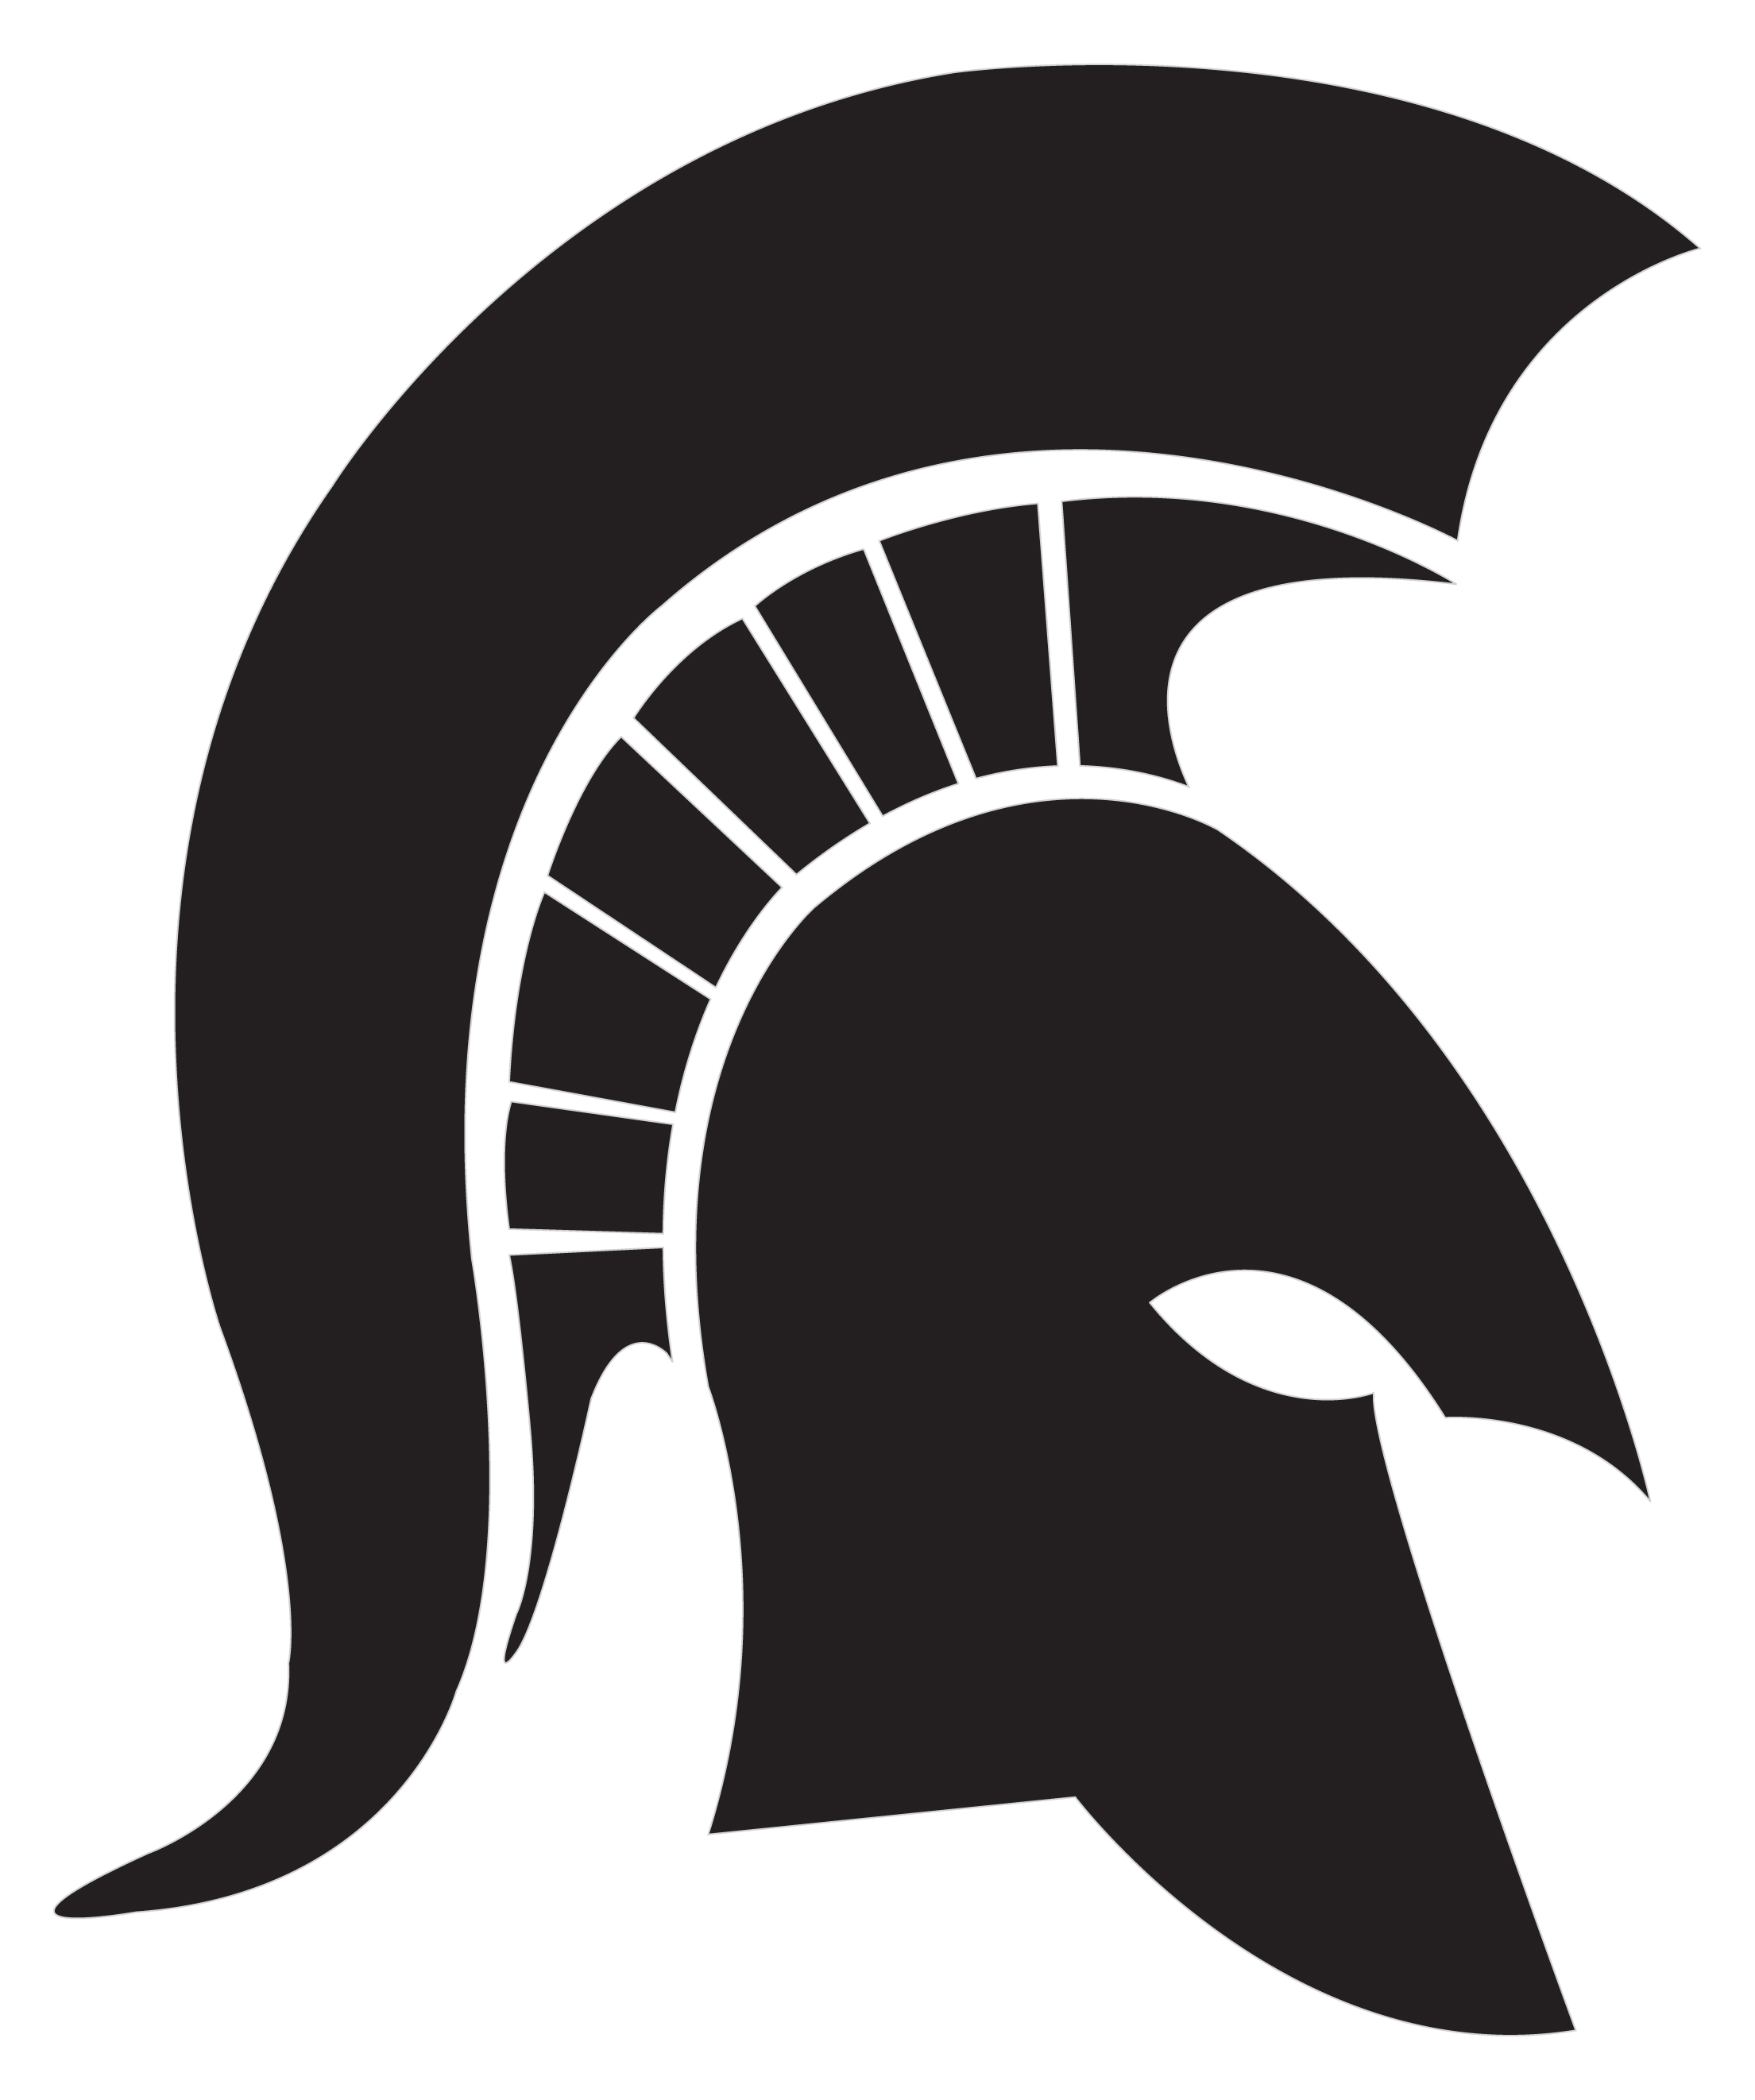 Clipart of the Black Spartan Helmet Logo free image.